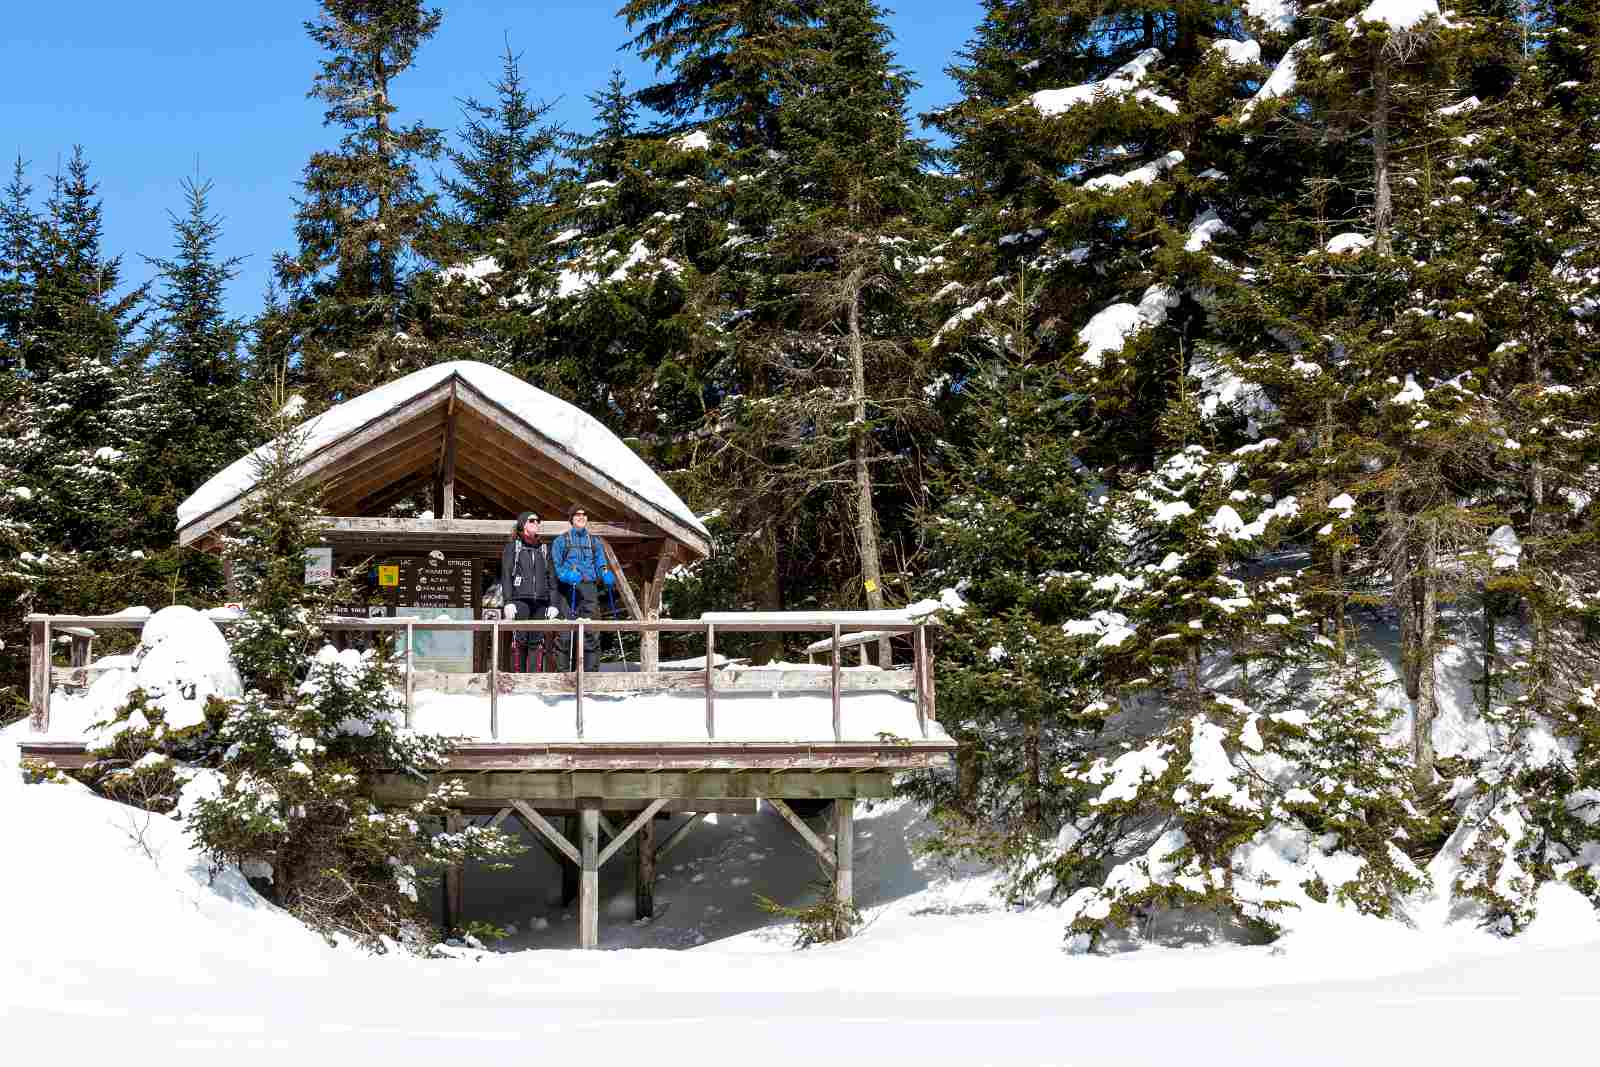 Top winter hikes near Montreal include Mont Sutton